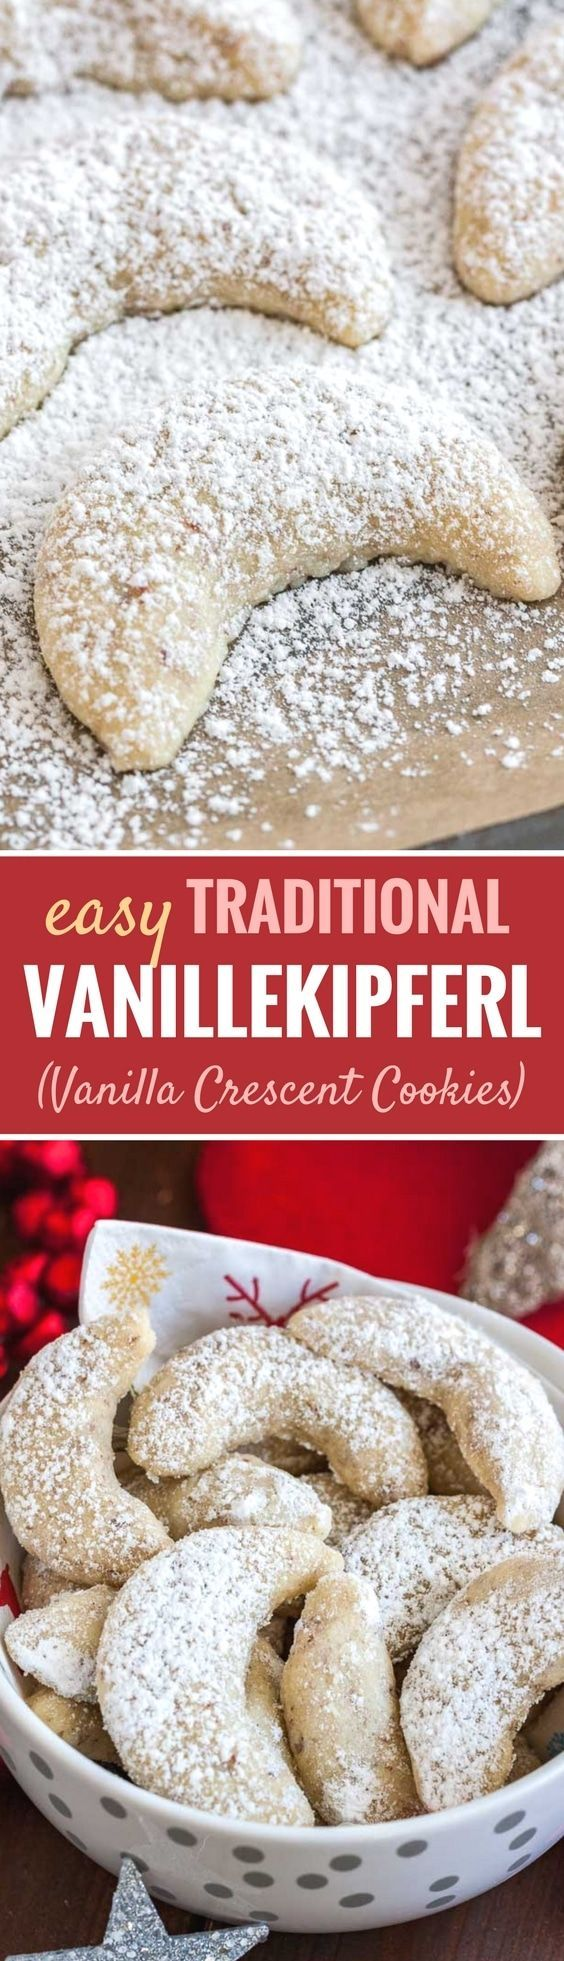 Vanillekipferl (German Vanilla Crescent Cookies) are traditional German Christmas Cookies made with ground nuts and dusted with vanilla sugar! They are tender, nutty and melt in your mouth. A perfect cookie to make ahead that's always a hit. #christmascookies #crescentcookies #vanillacookies #germanrecipes #cookies